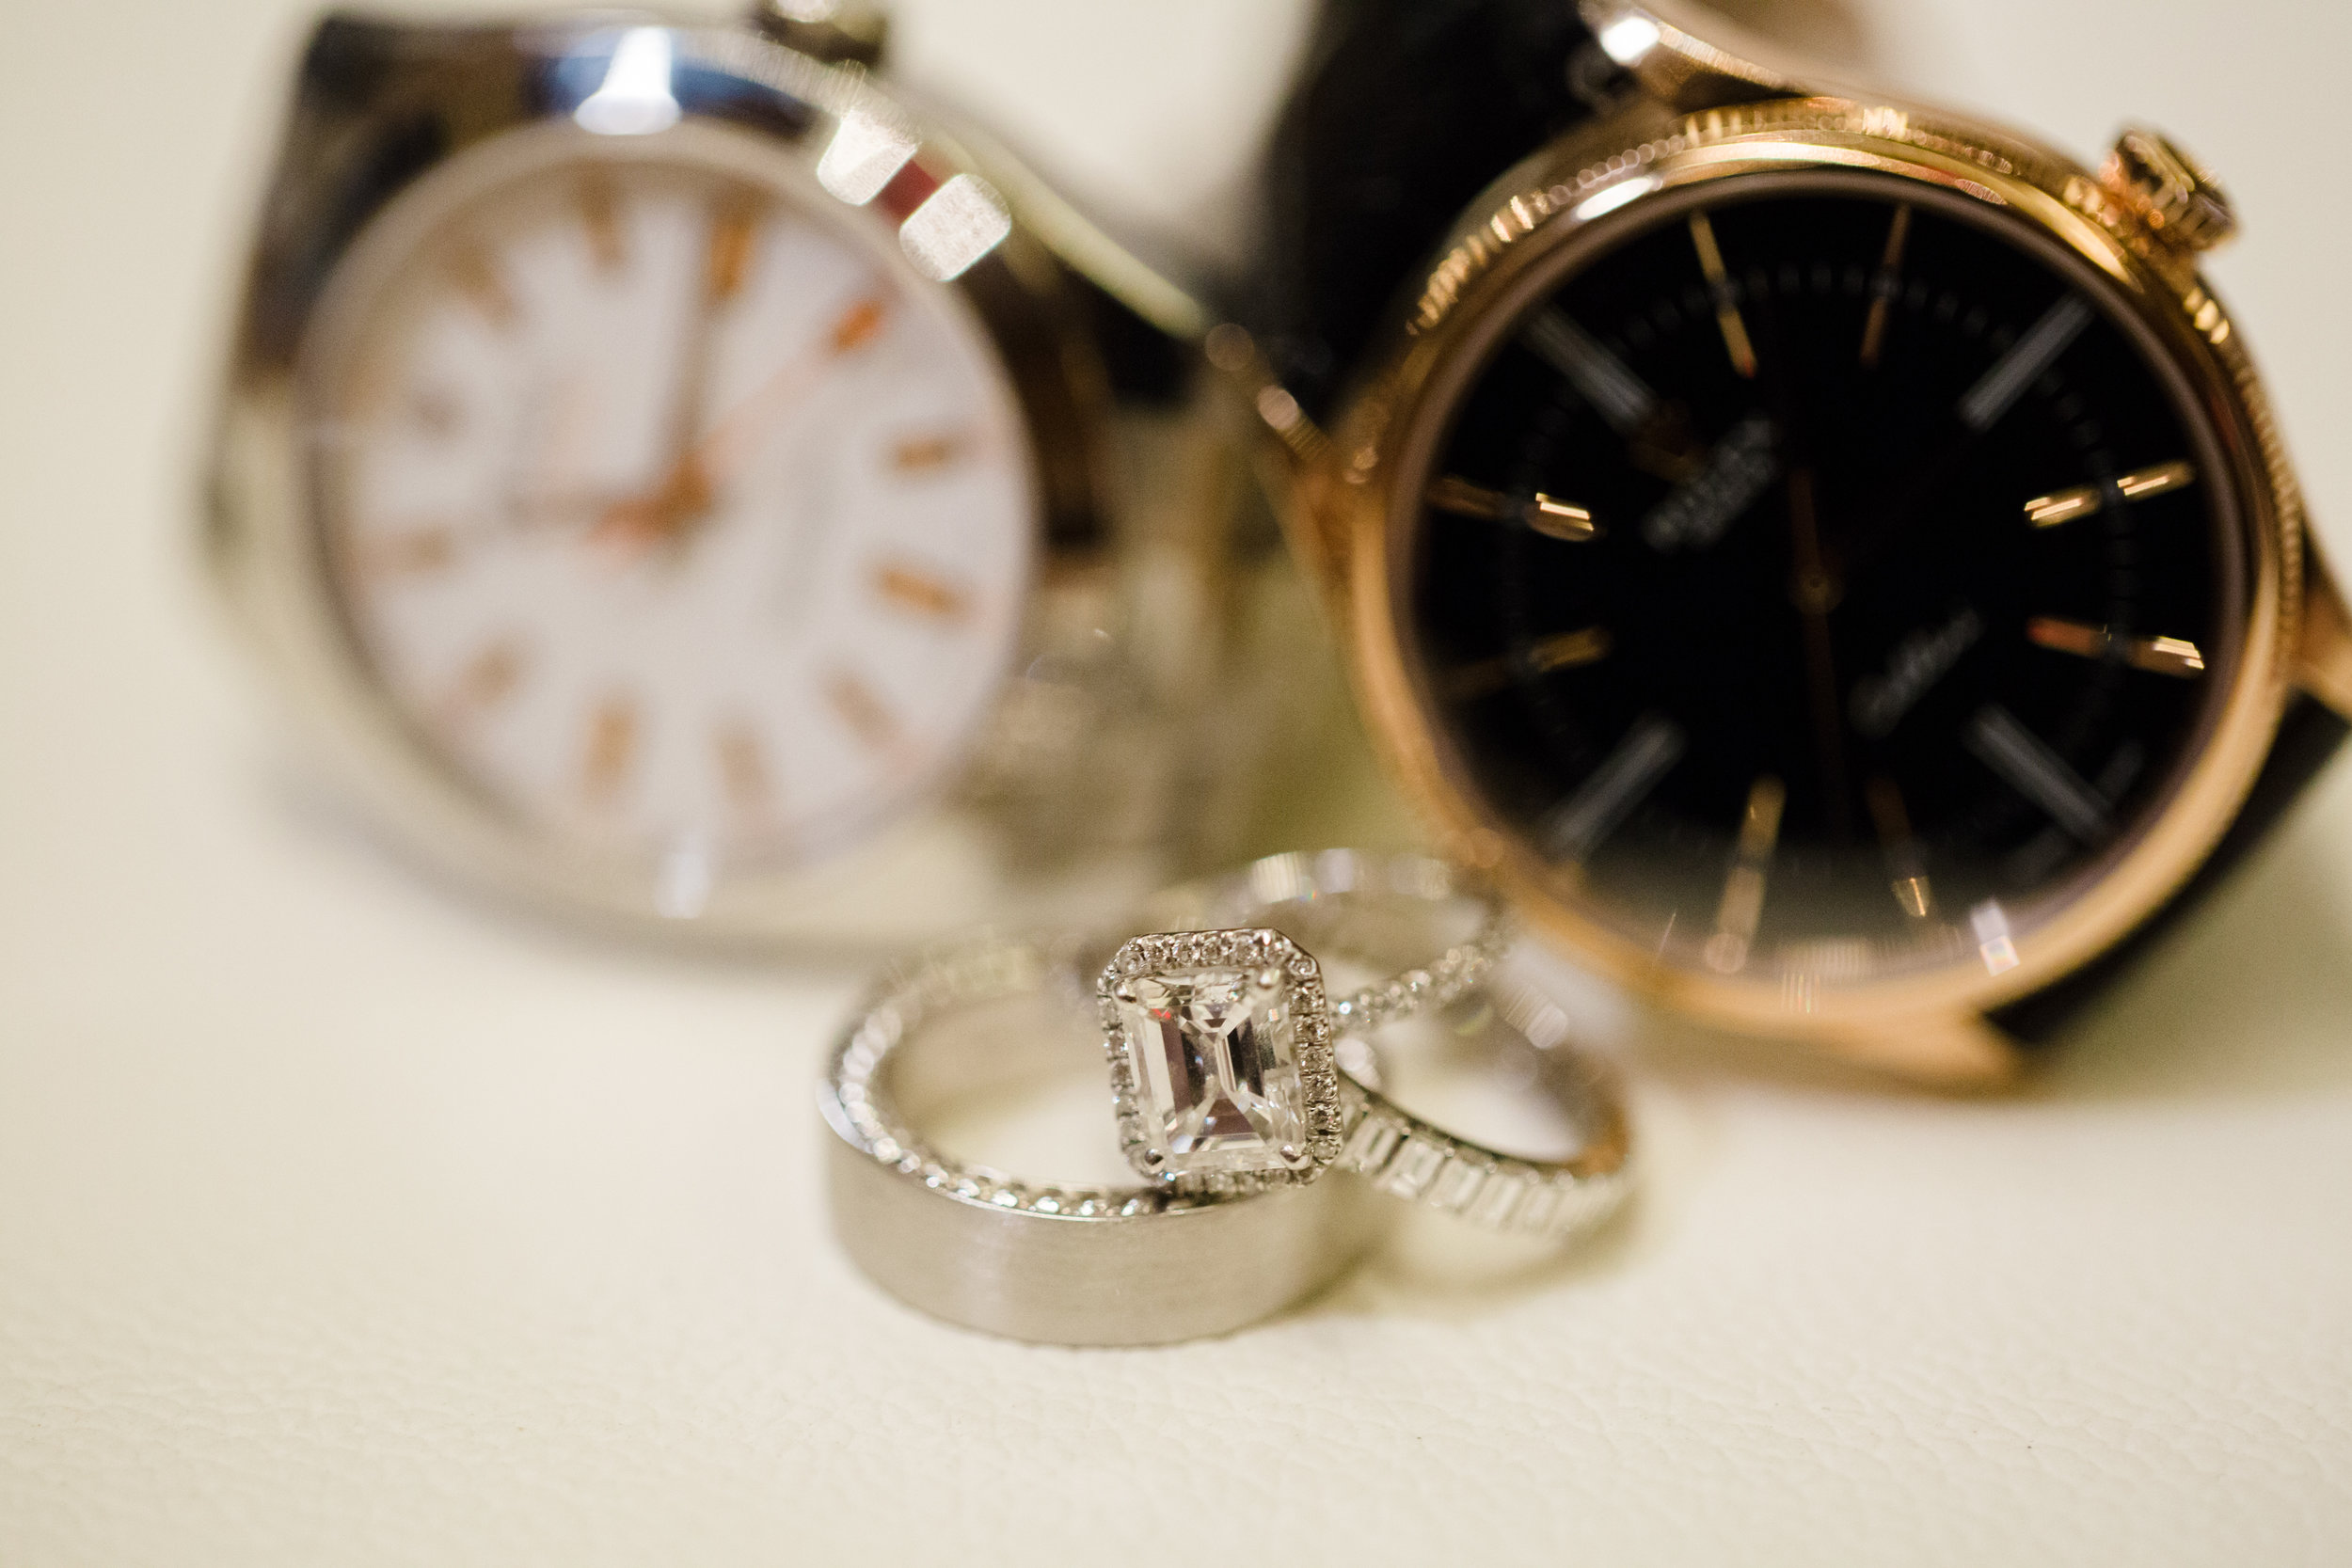 Wedding rings with his and hers rolex watches.Luxury wedding at the Mandarin Oriental with a color scheme of white, blush, and pops of wine red produced by Las Vegas Wedding Planner Andrea Eppolito with photos by Stephen Salazar Photography.